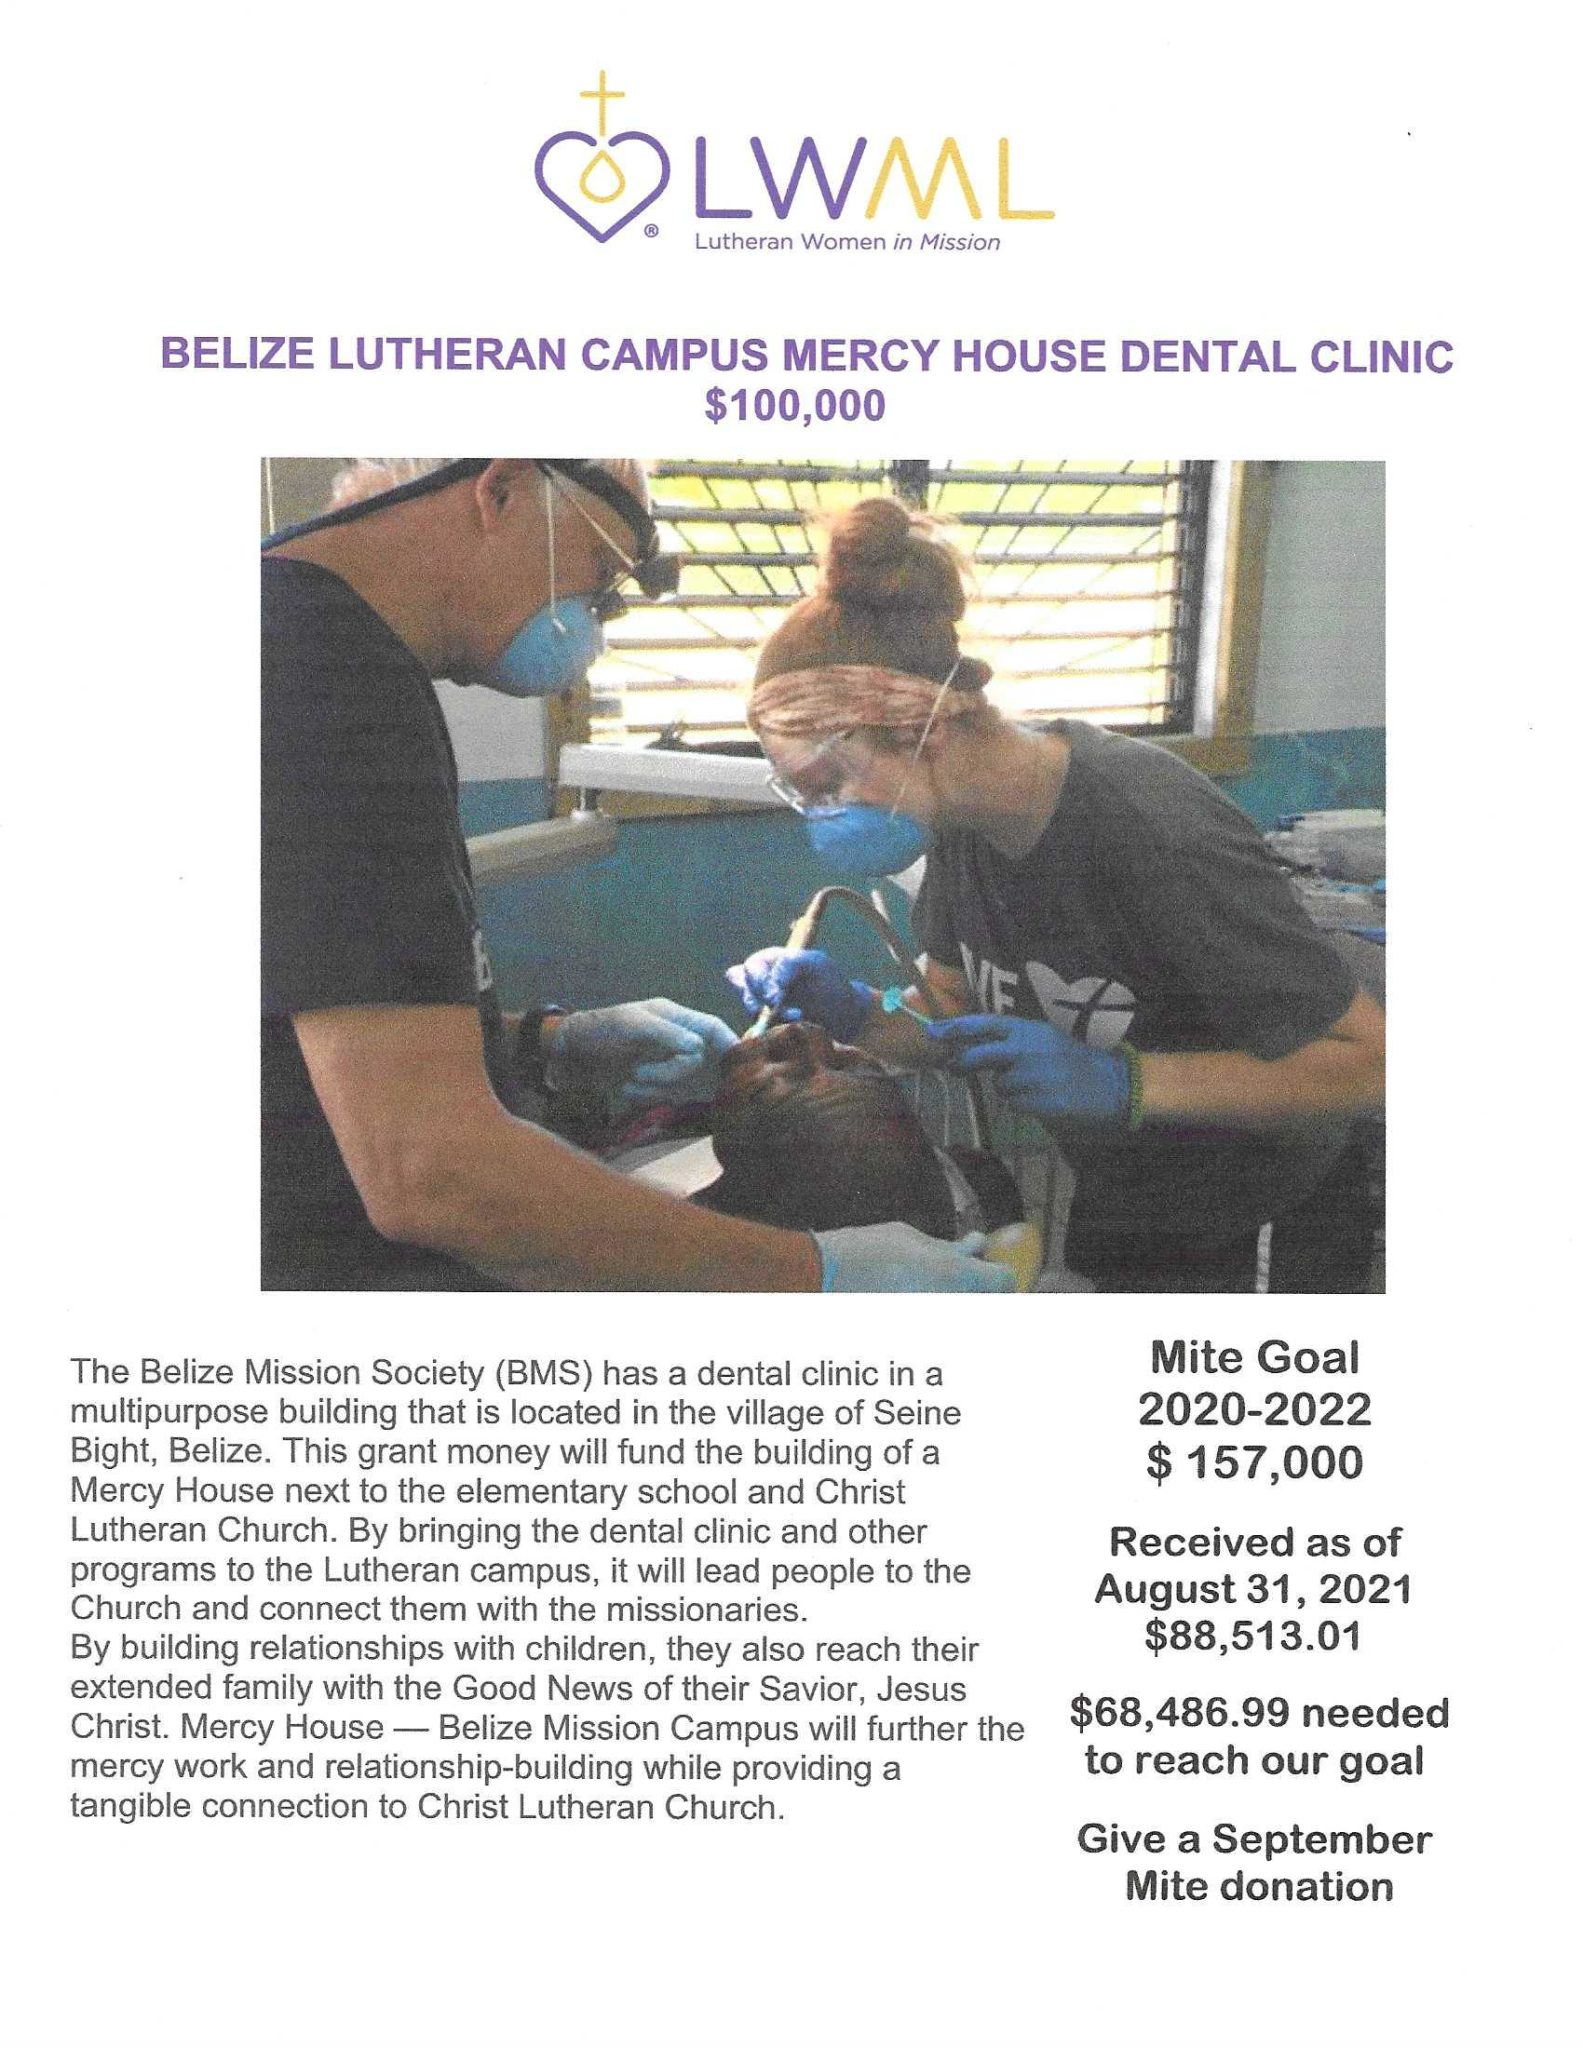 Poster with photo of person getting a dental exam & description for the Belize mission grant for LWML NID